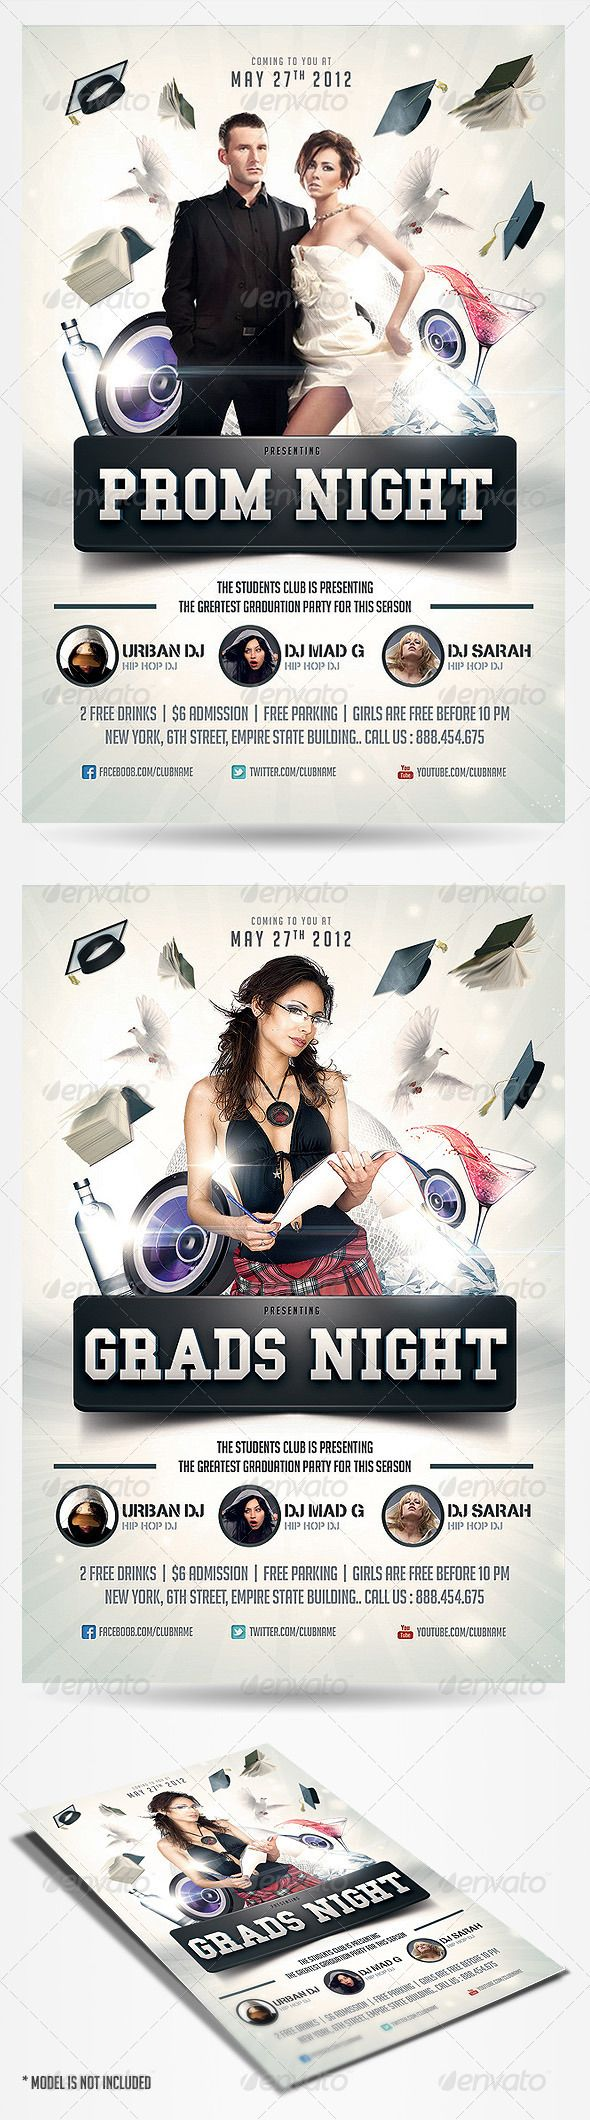 Graduation Prom Flyer Graphicriver Item For Sale My Flyer